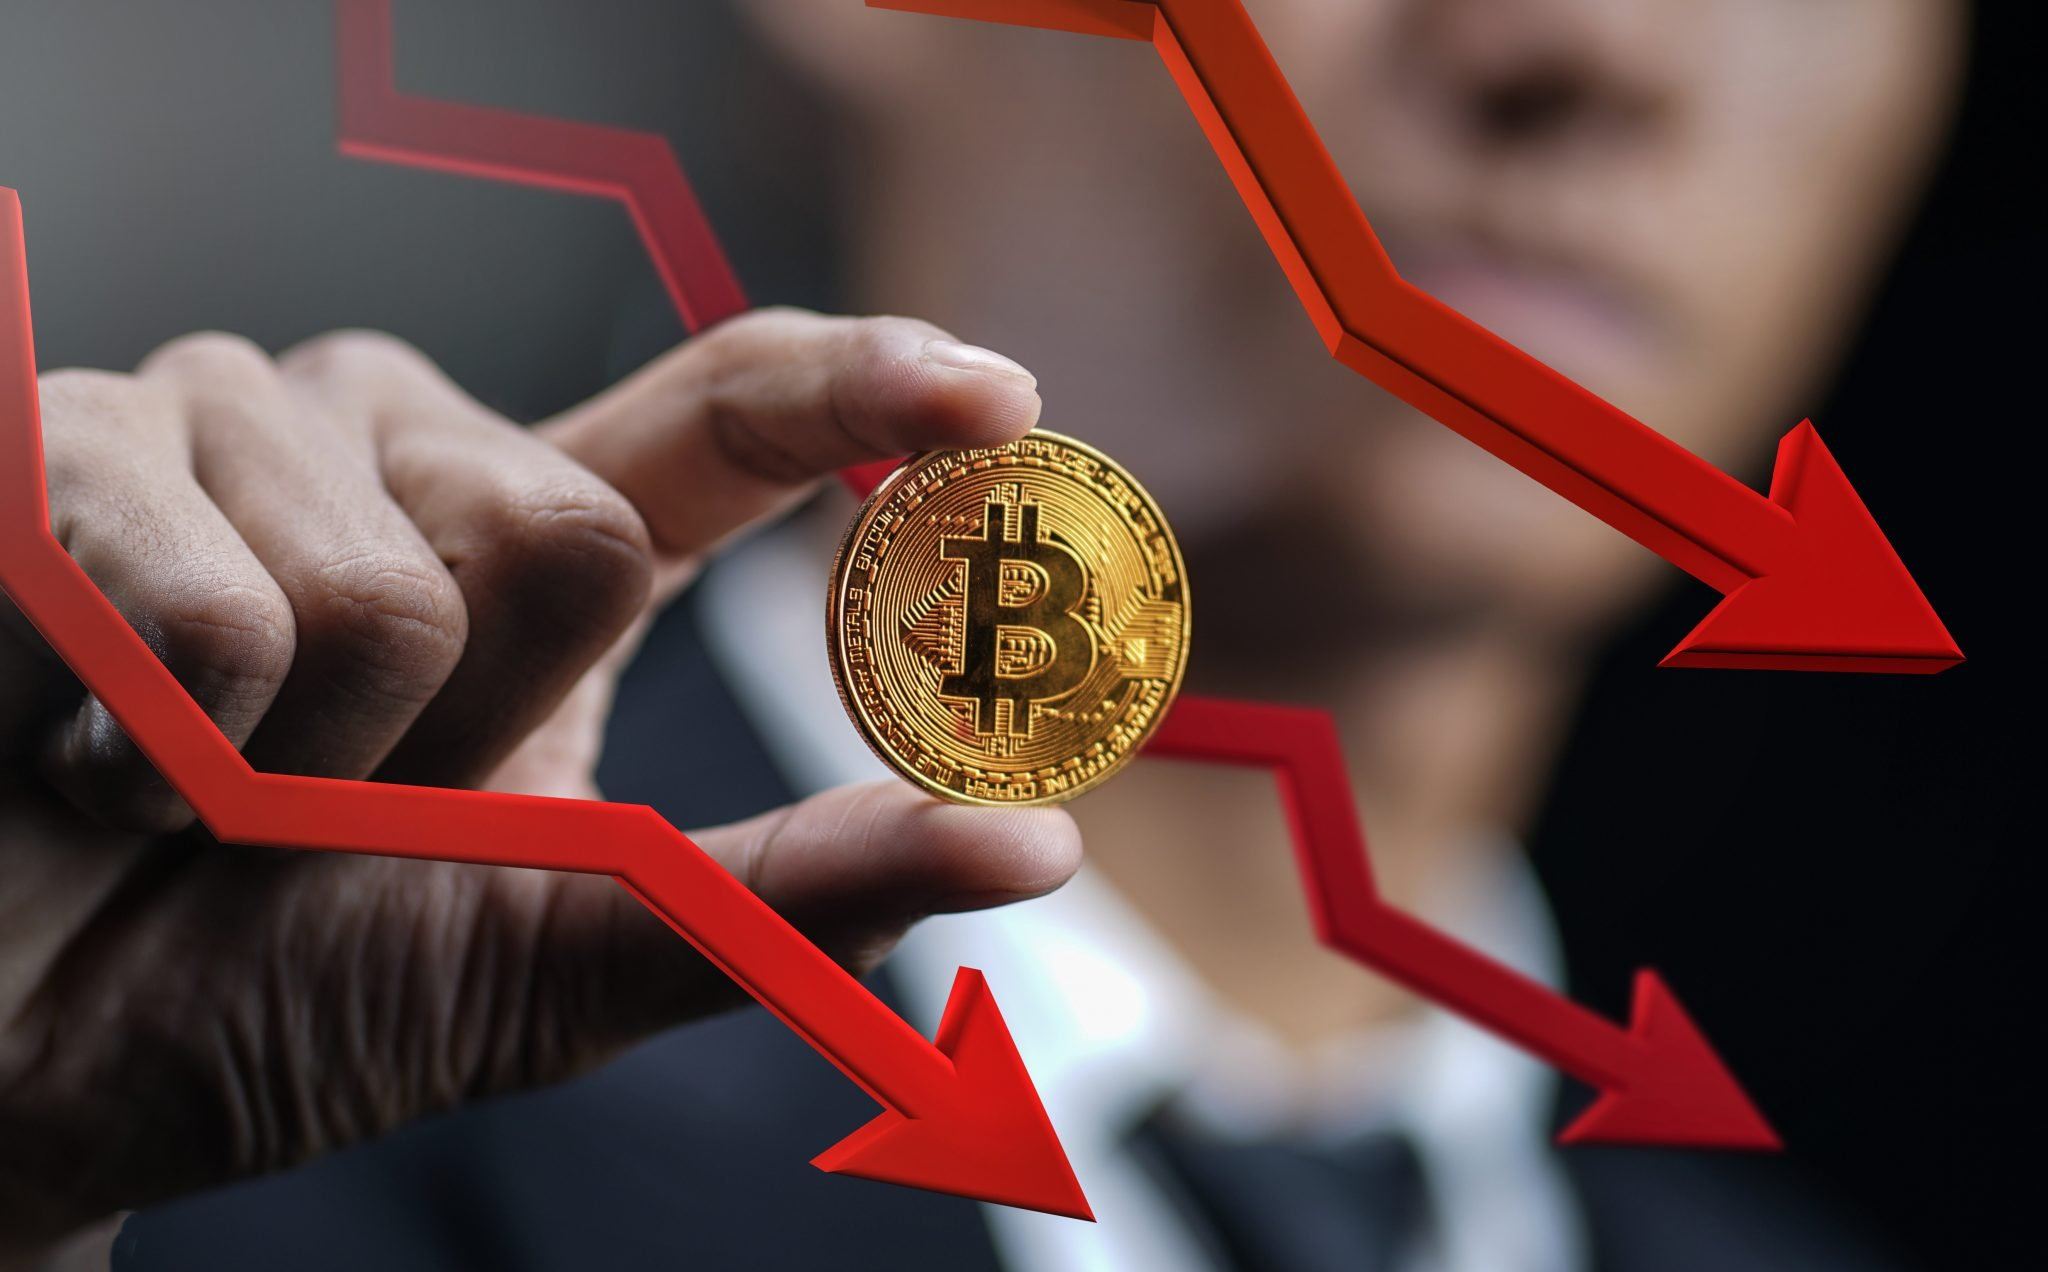 Bitcoin Price Falling Down. Businessman Holding Bitcoin With Red 3D Arrow Down